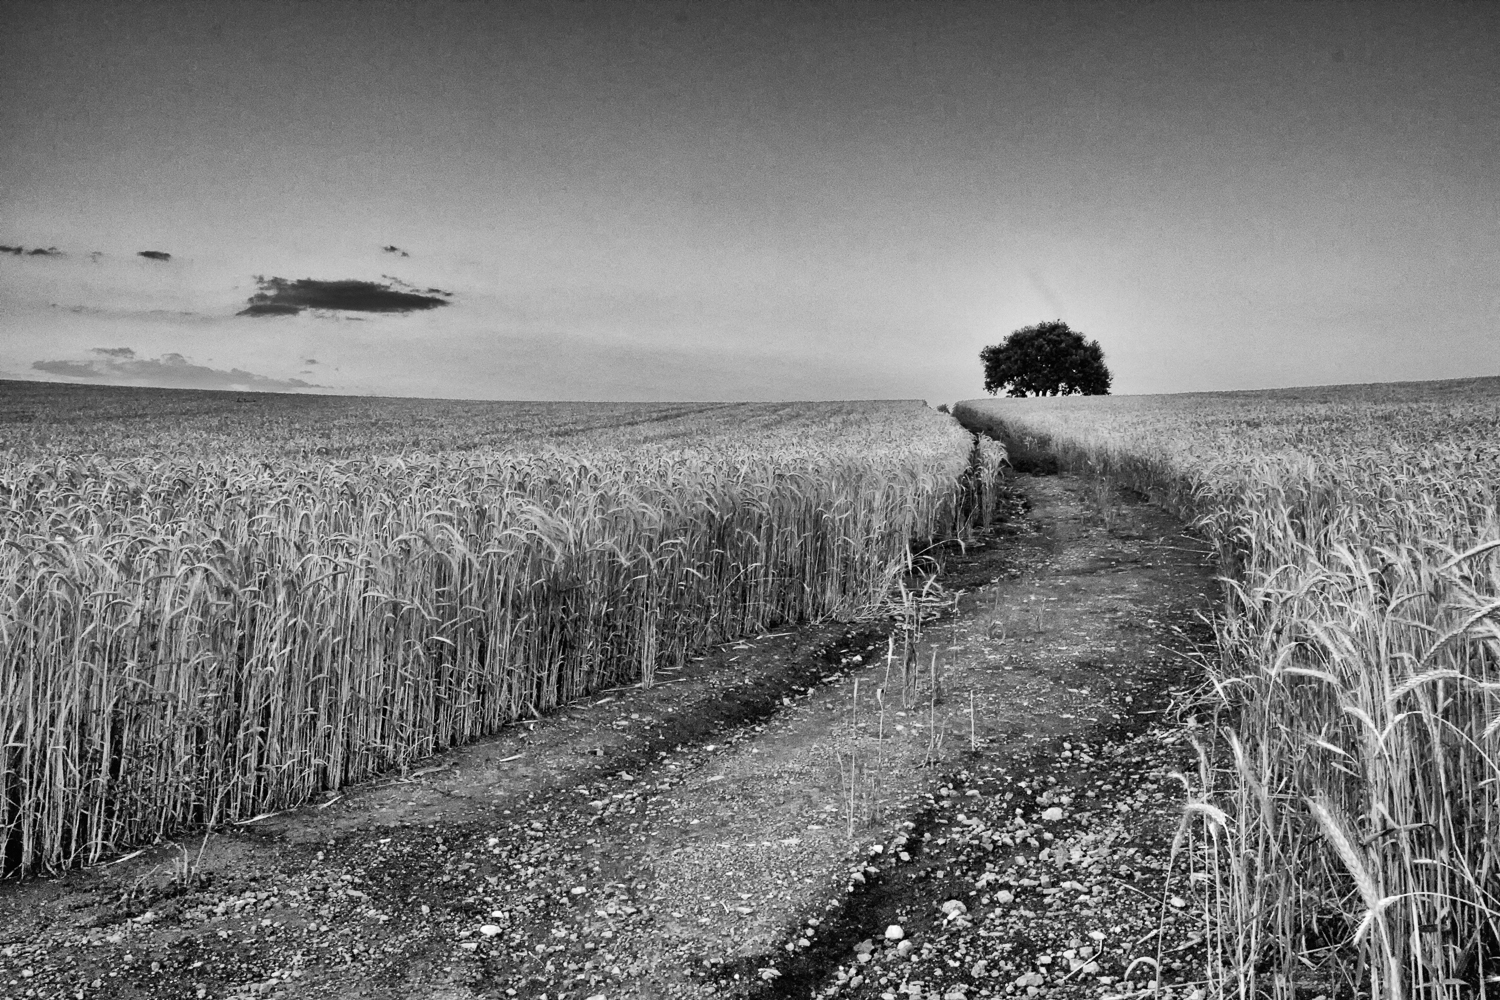 Wheat fields in the Spanish countryside.